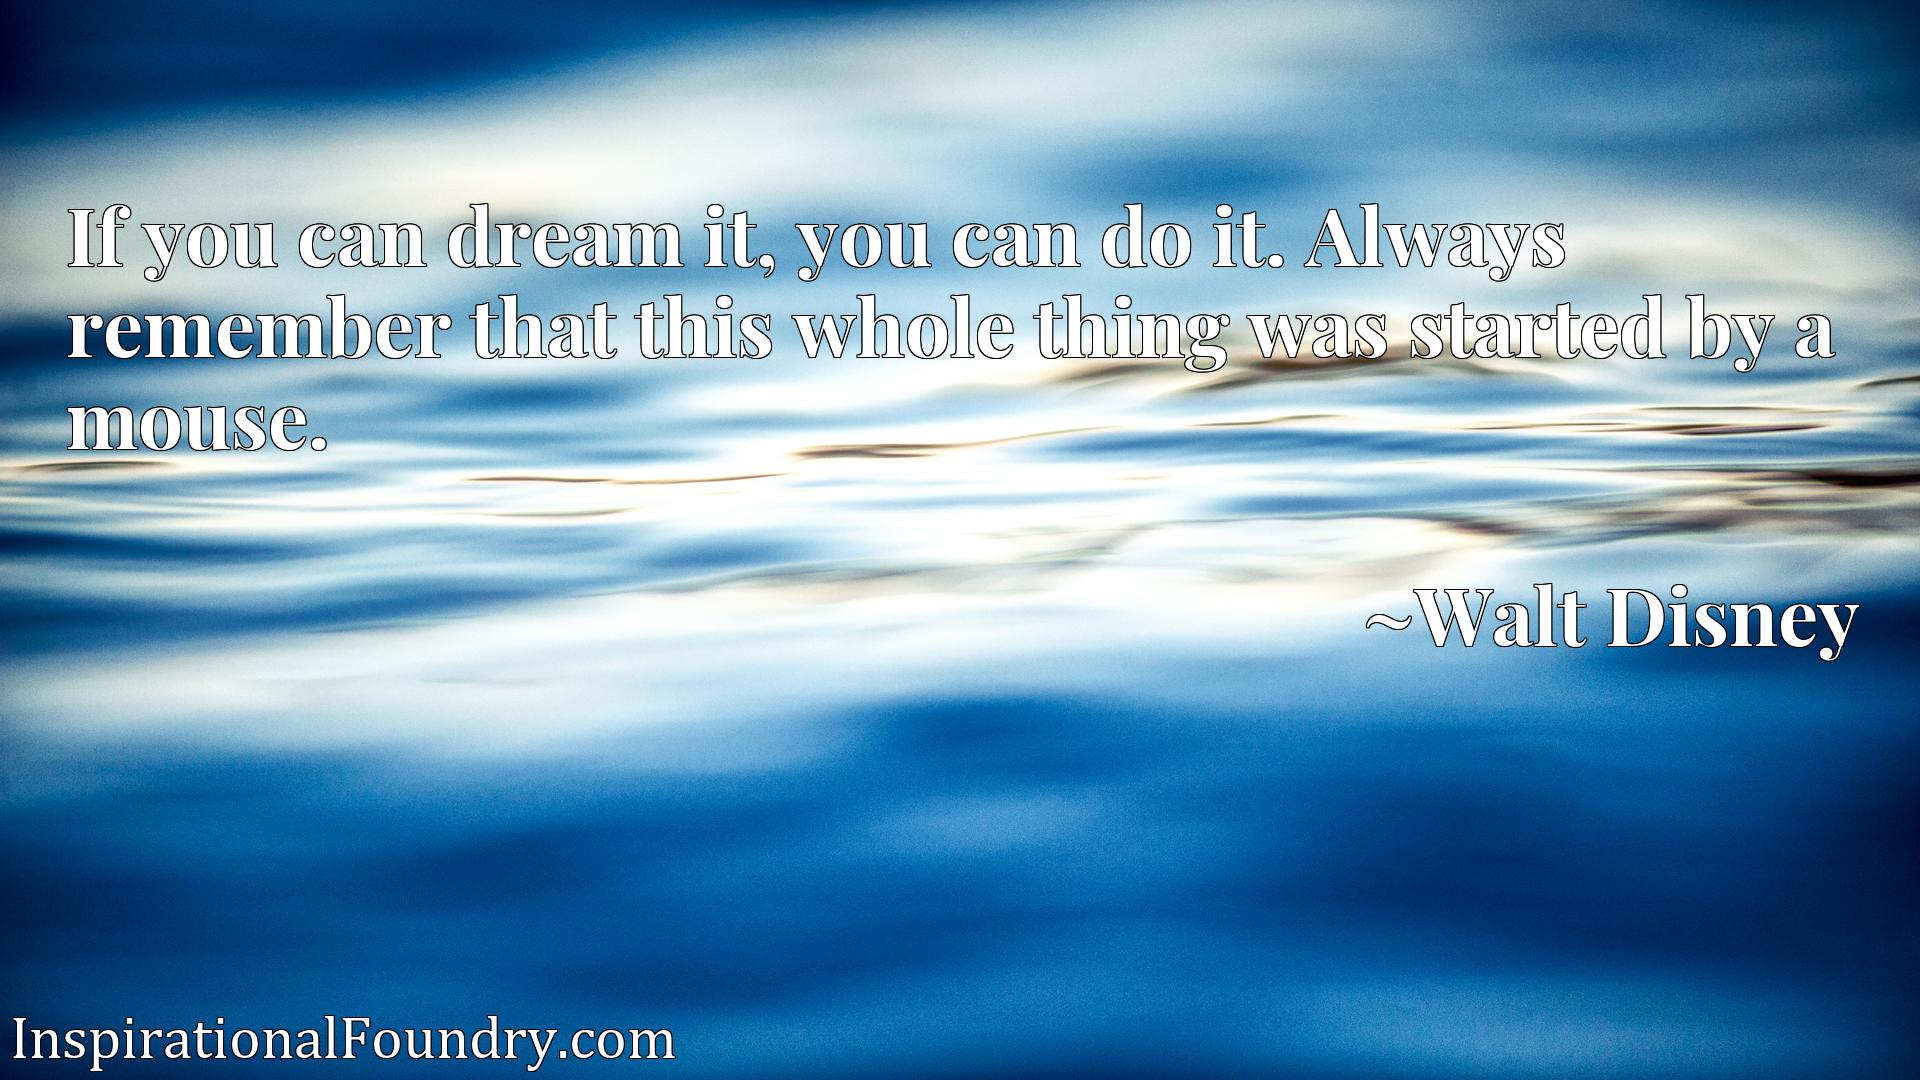 If you can dream it, you can do it. Always remember that this whole thing was started by a mouse.